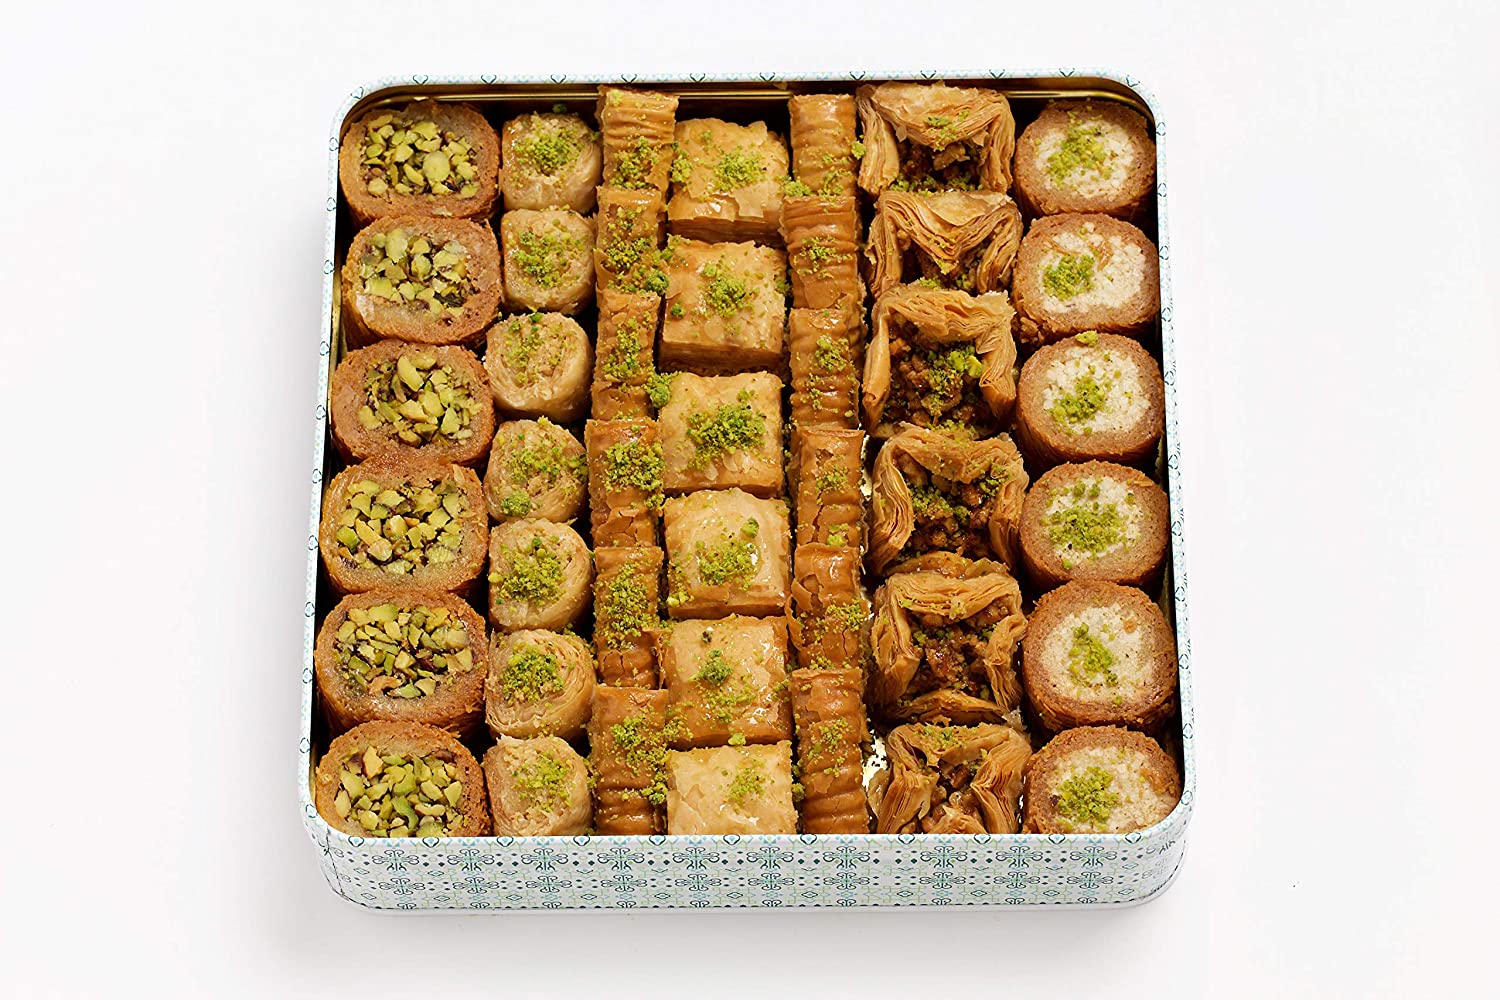 Al Bohsali 1870- Premium Popular brand in the world Mix Pieces A surprise price is realized Baklava 41